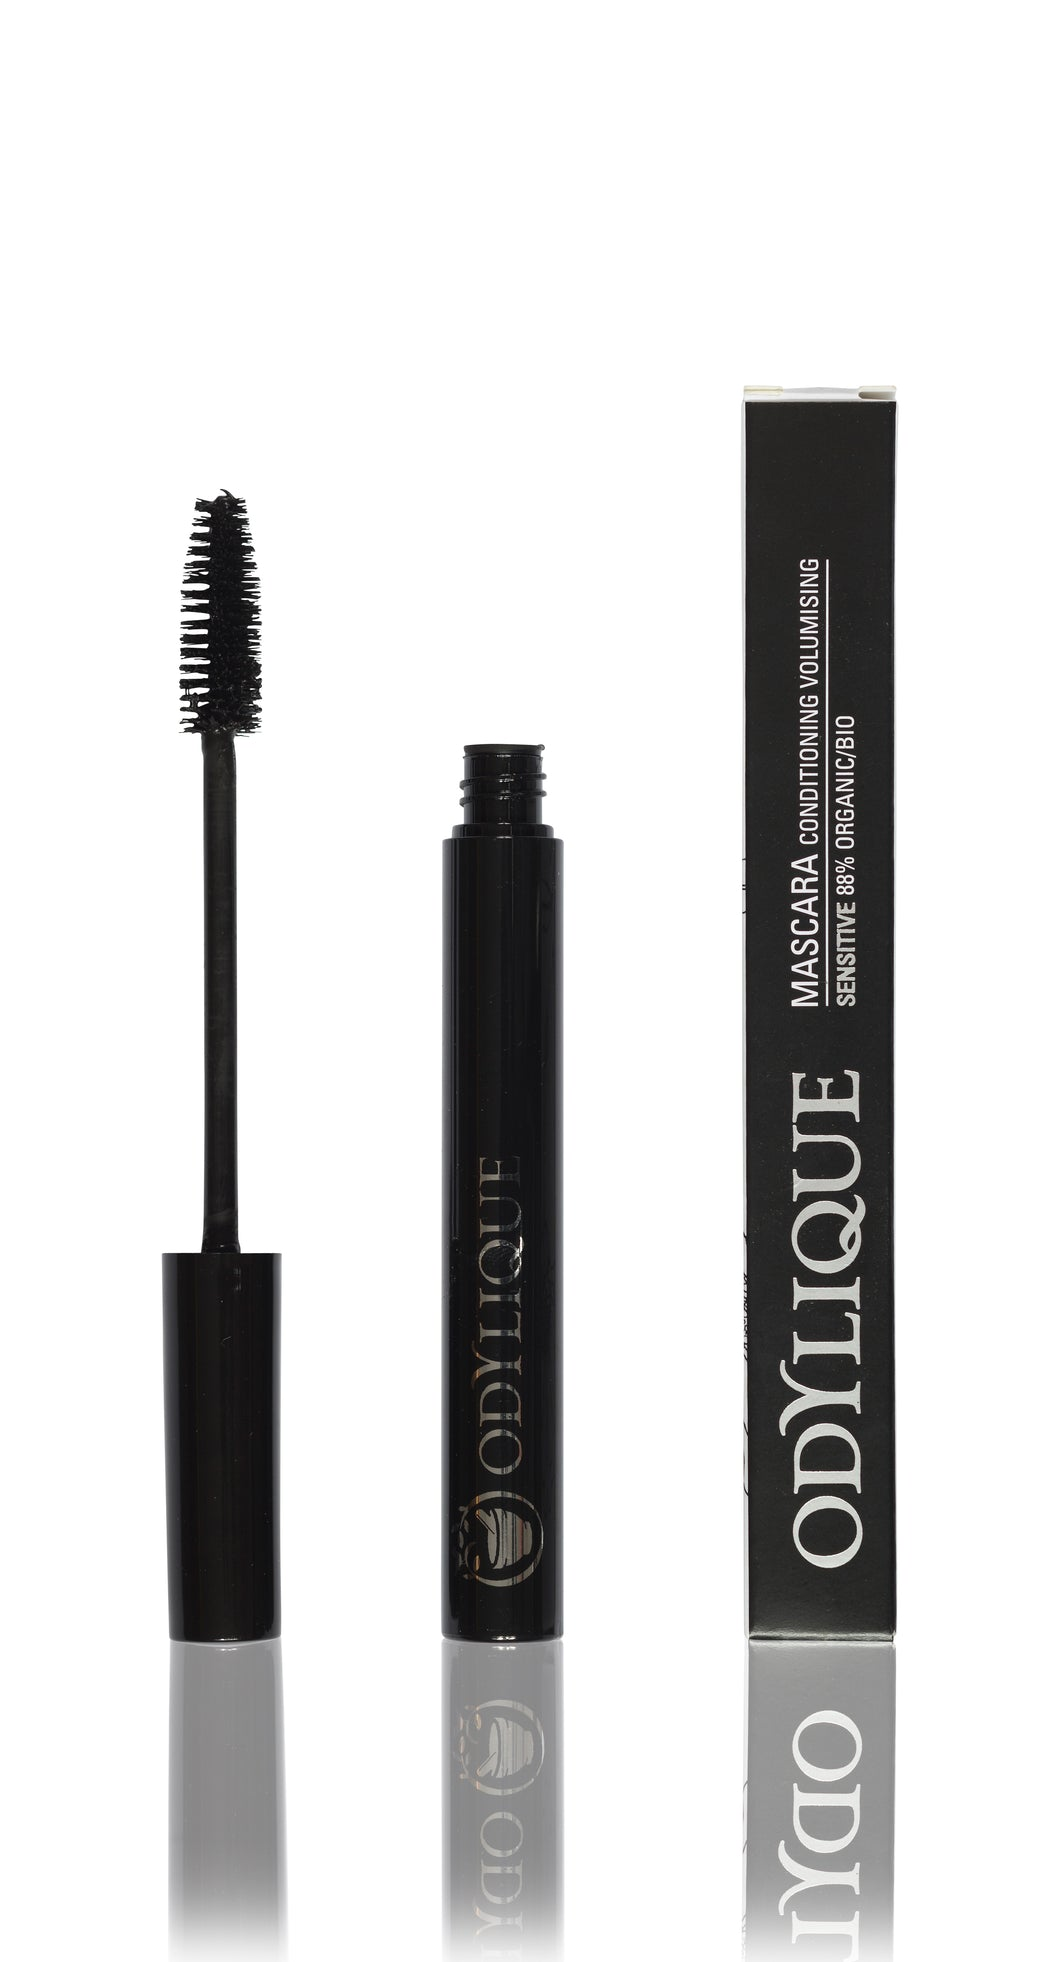 Odylique Organic Mascara - Blomma Beauty